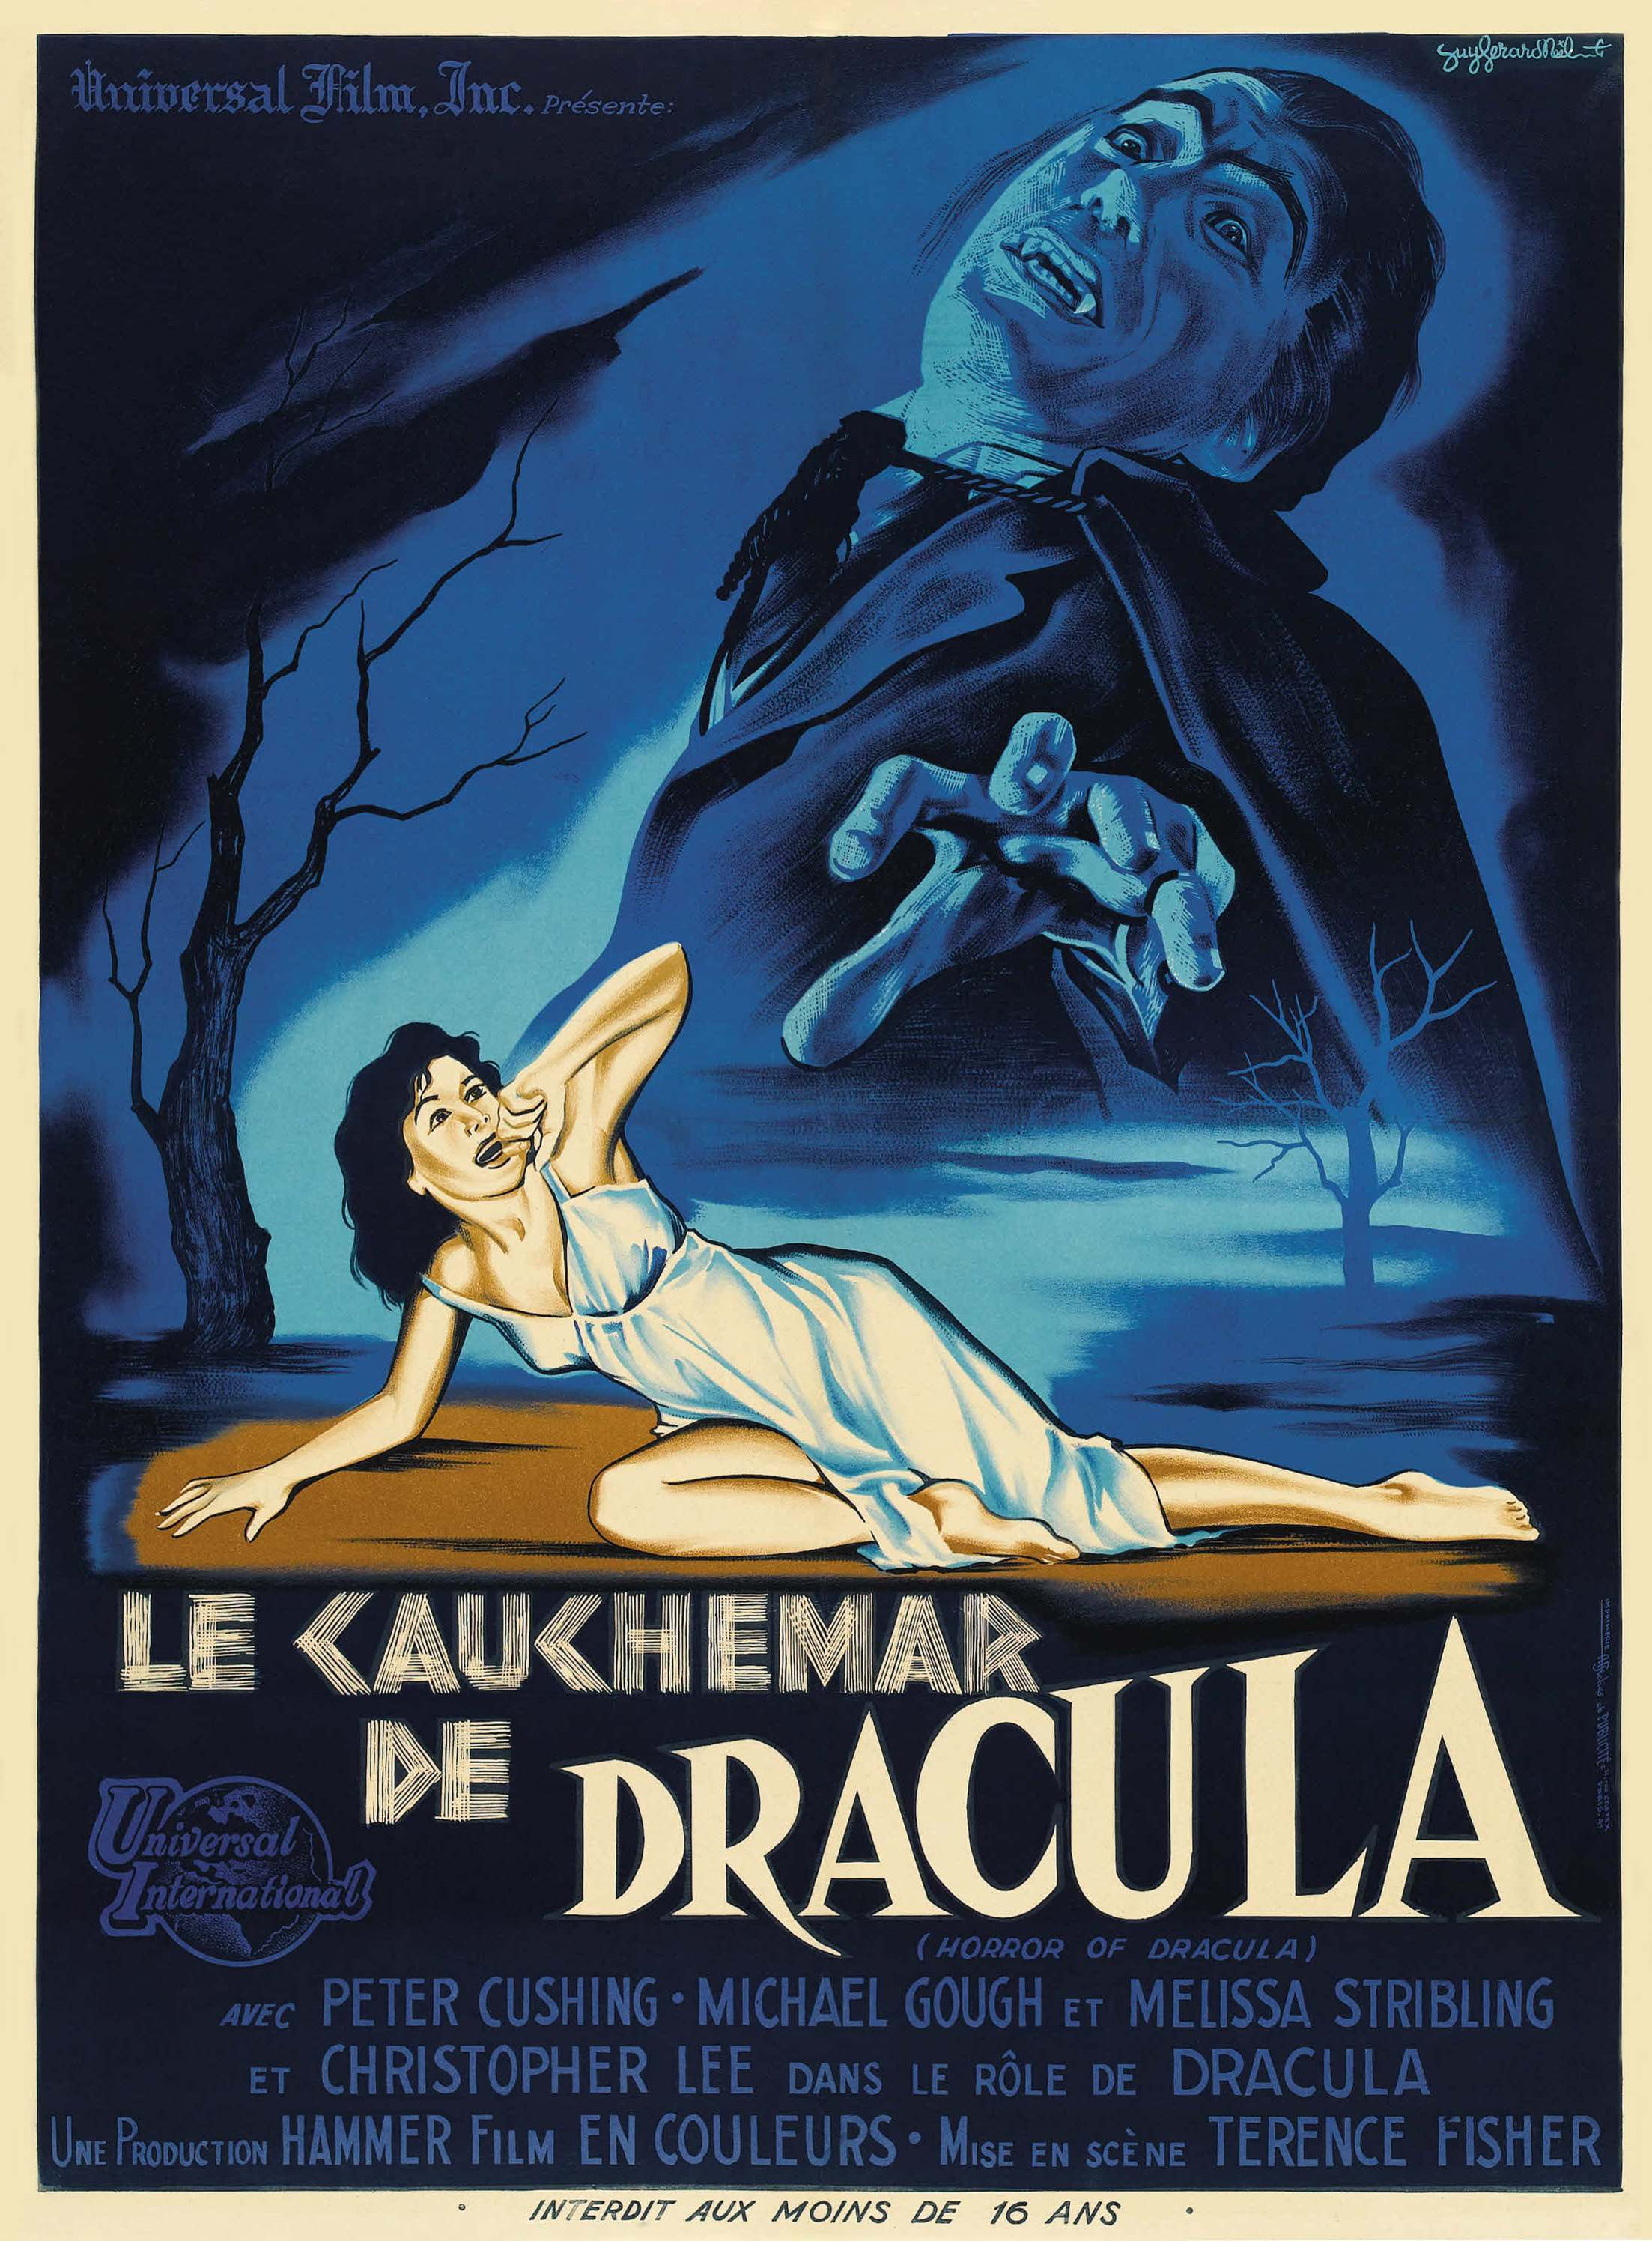 French poster for Dracula